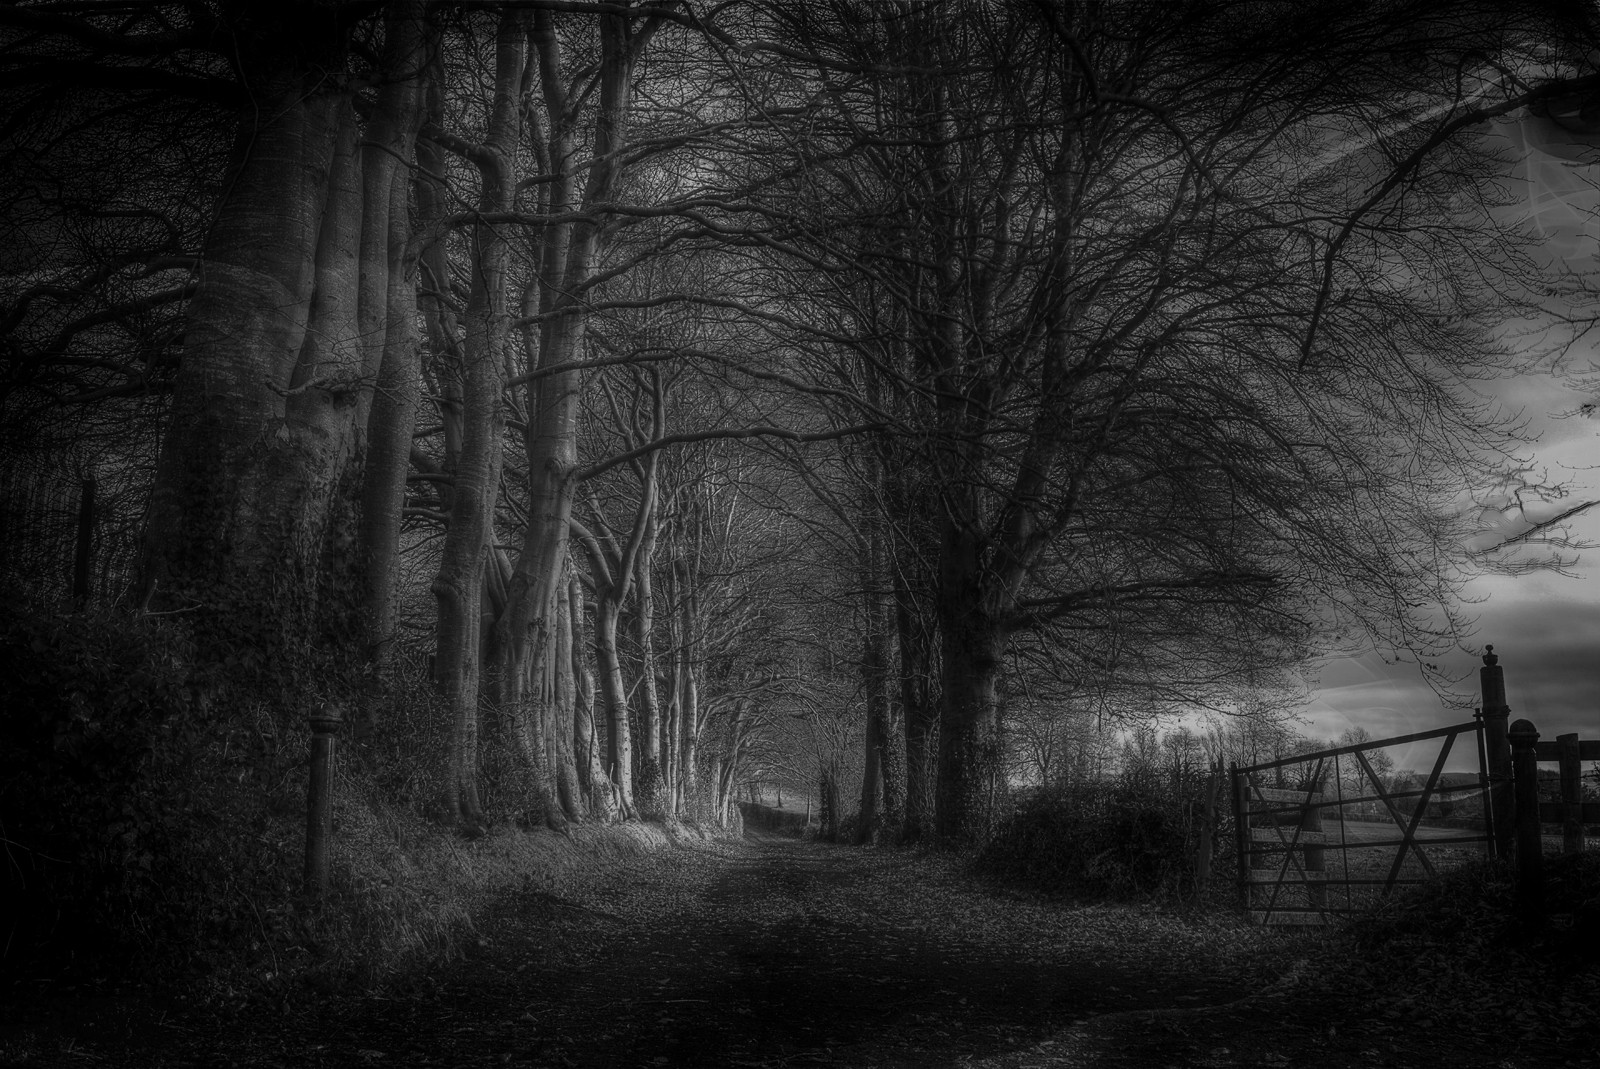 MONO - Whispers In the Shadows by Alan Hillen (11 marks)